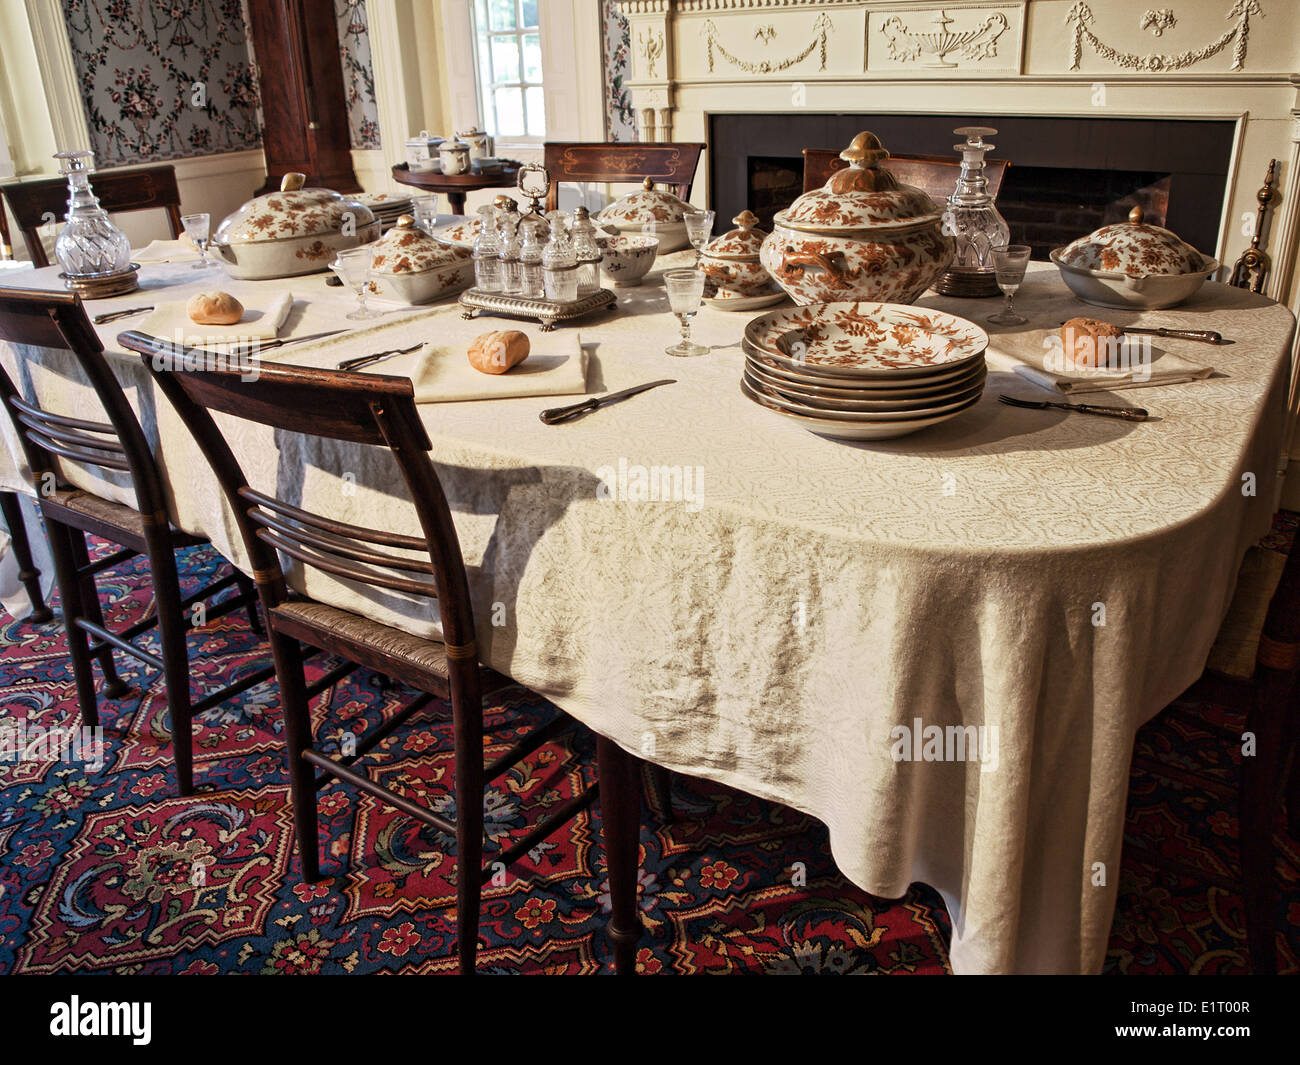 Stock Photo   old fashioned dining room table. old fashioned dining room table Stock Photo  Royalty Free Image